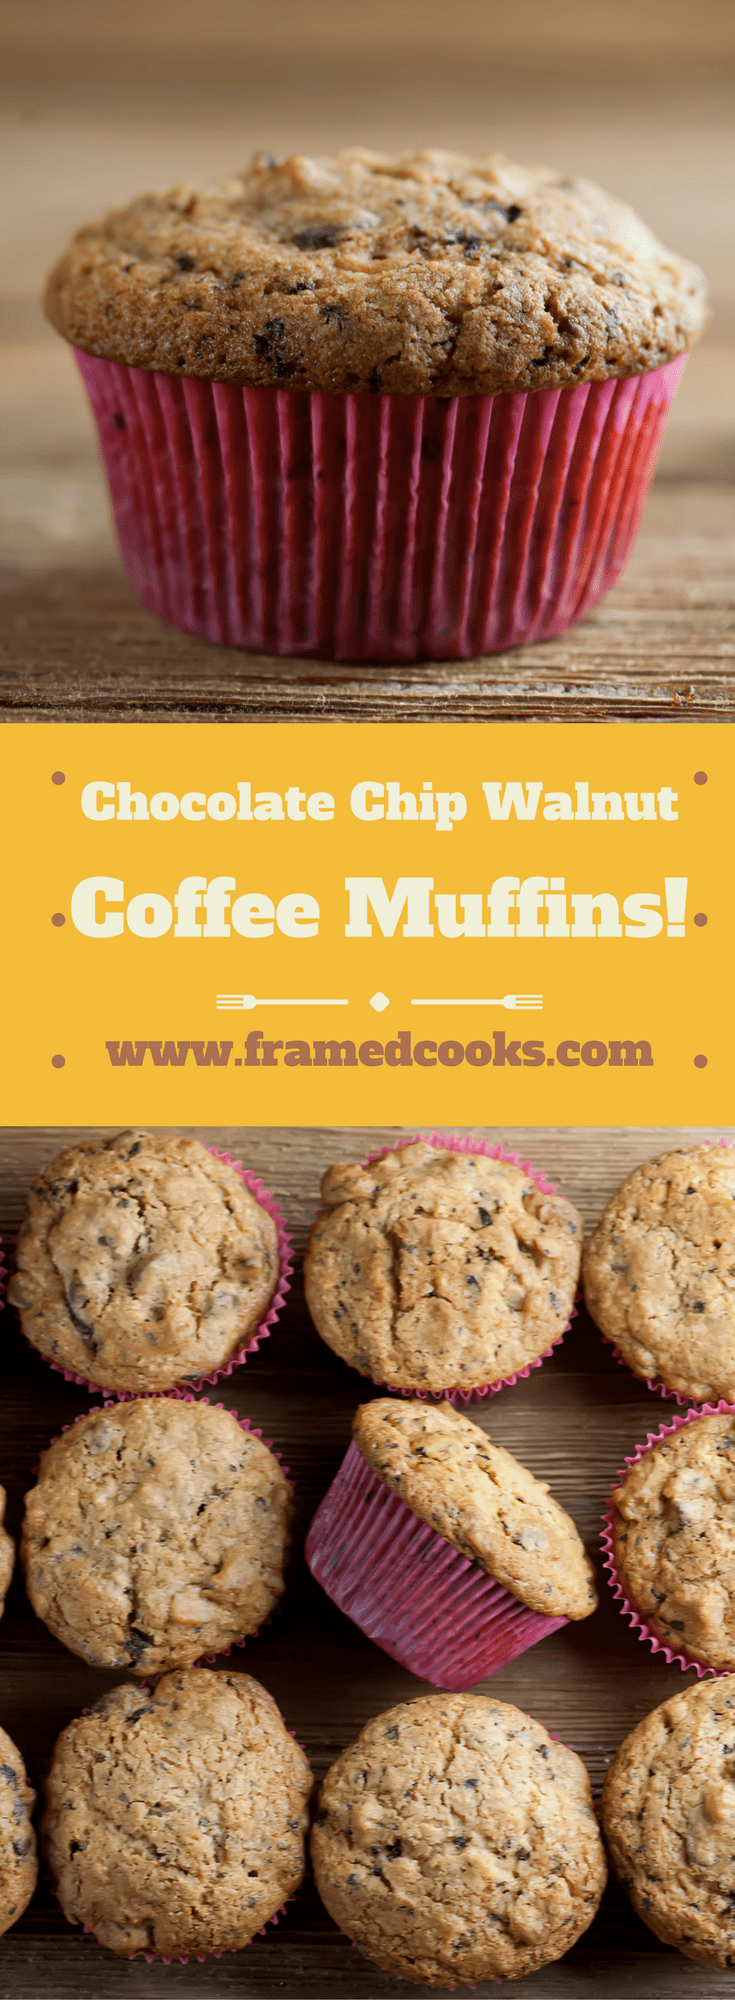 This recipe for coffee walnut chocolate chip muffins has all the good things in it!  Perfect for brunch, dessert or when you want a perfect snack.